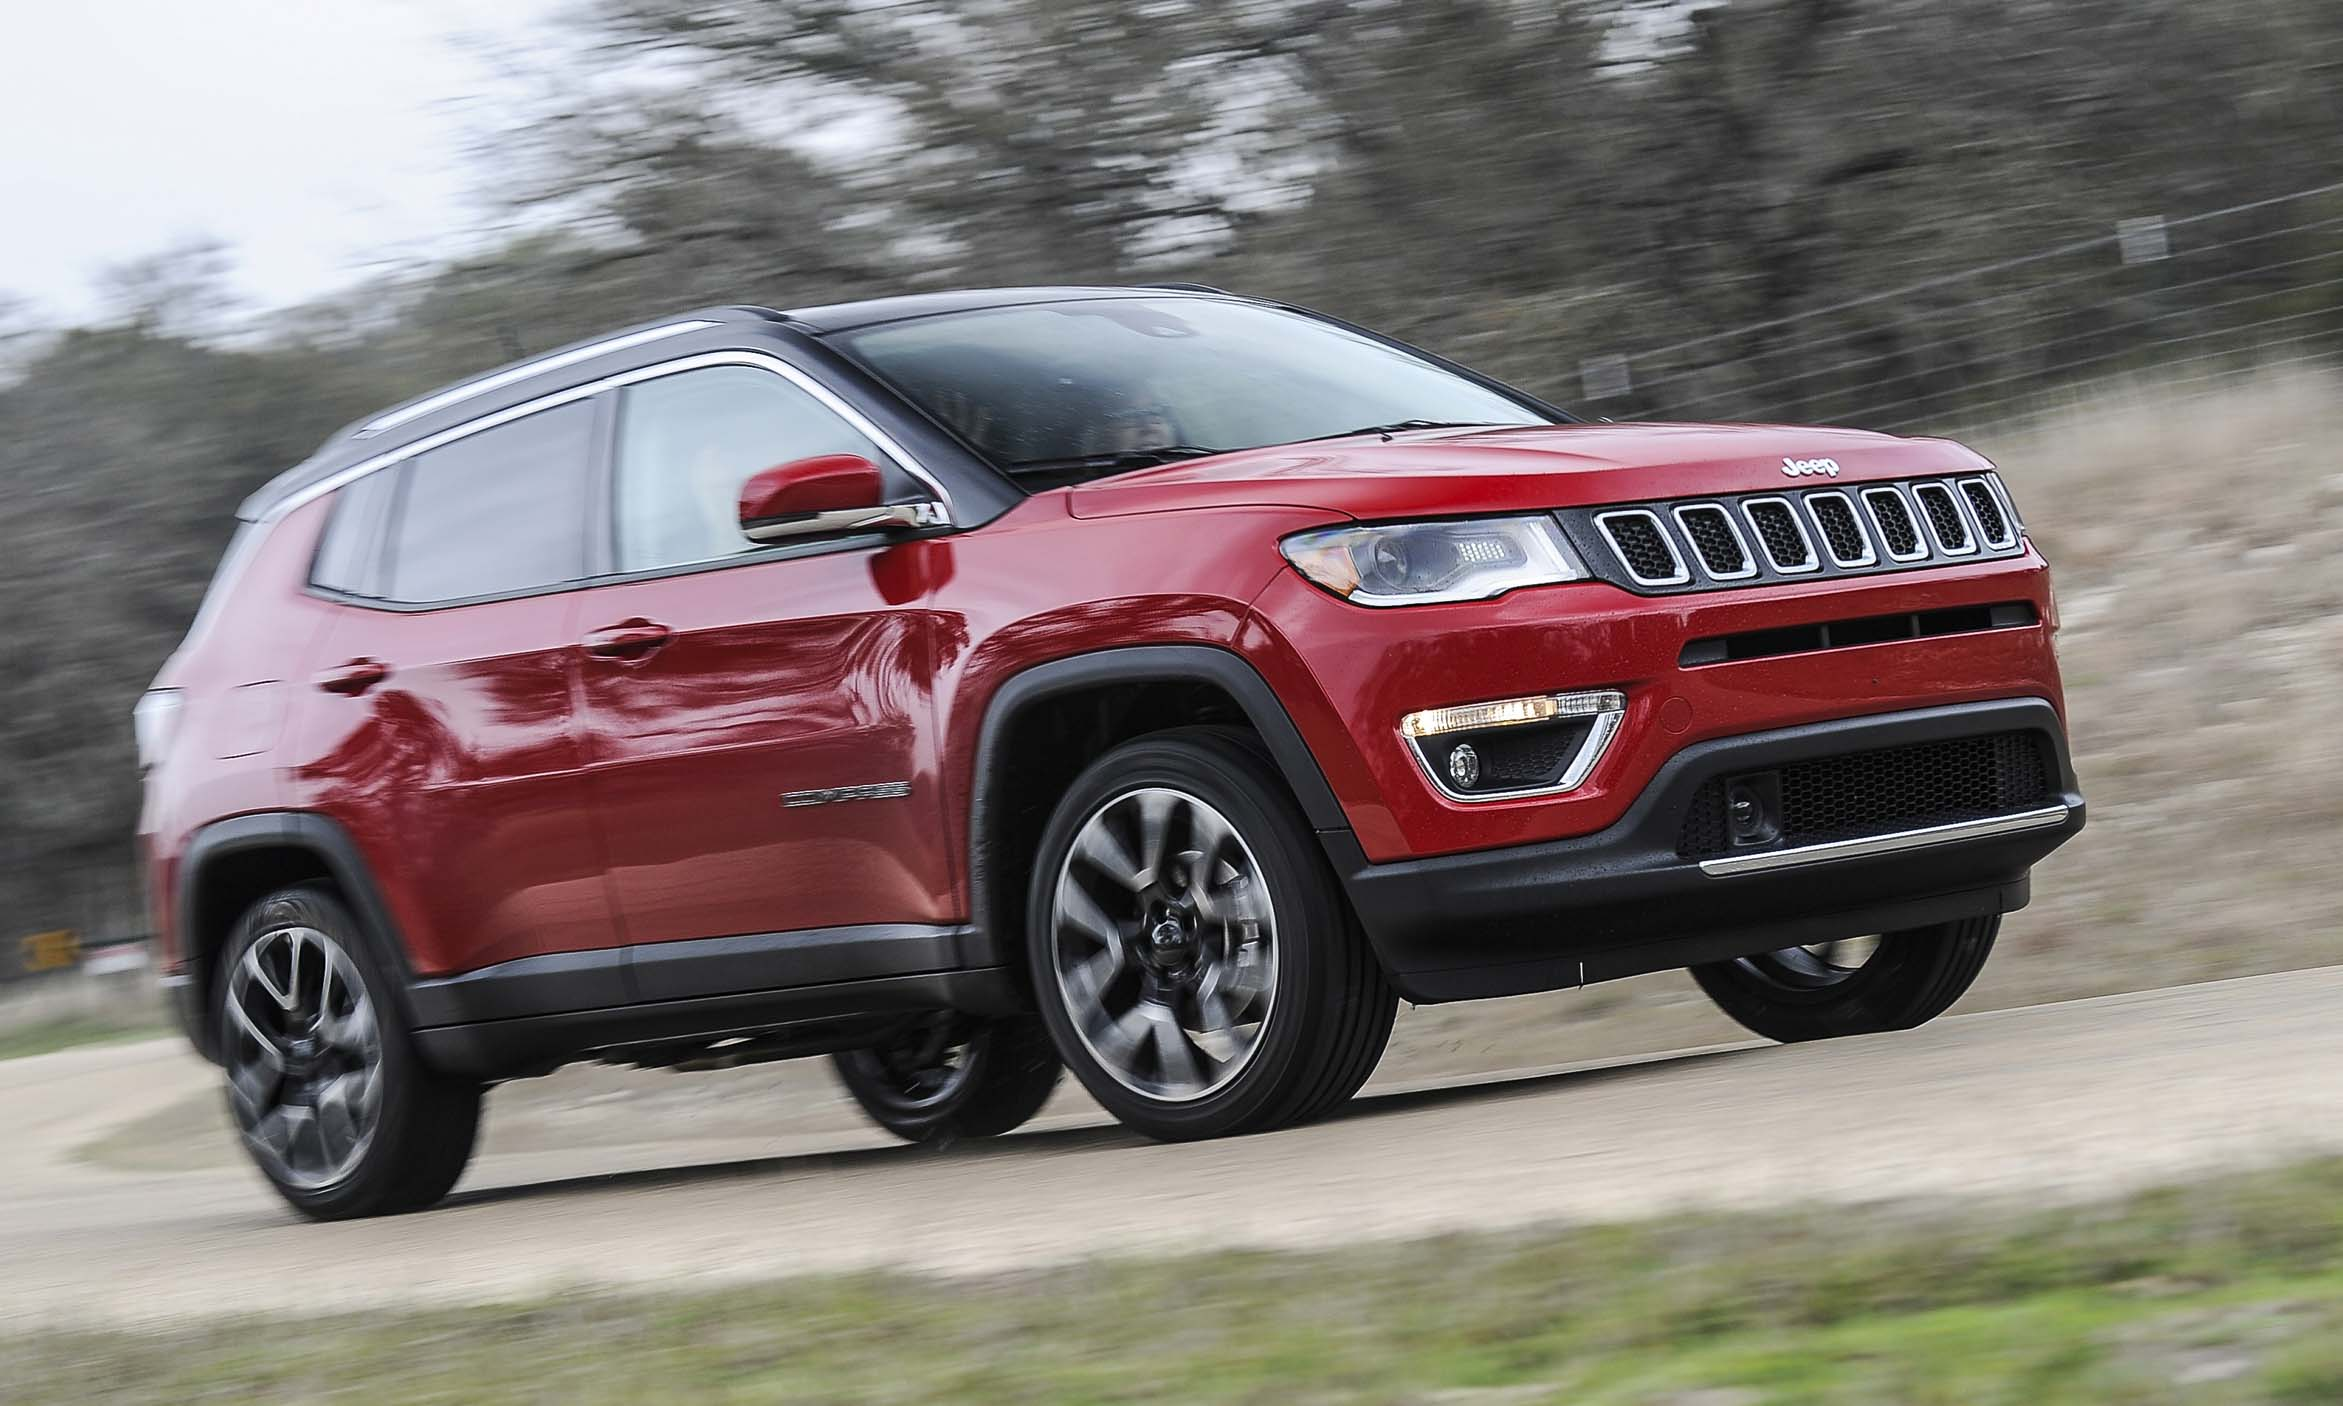 hight resolution of number of vehicles affected 2 761 report date may 1 2018 issue chrysler fca us llc is recalling certain 2018 jeep compass vehicles